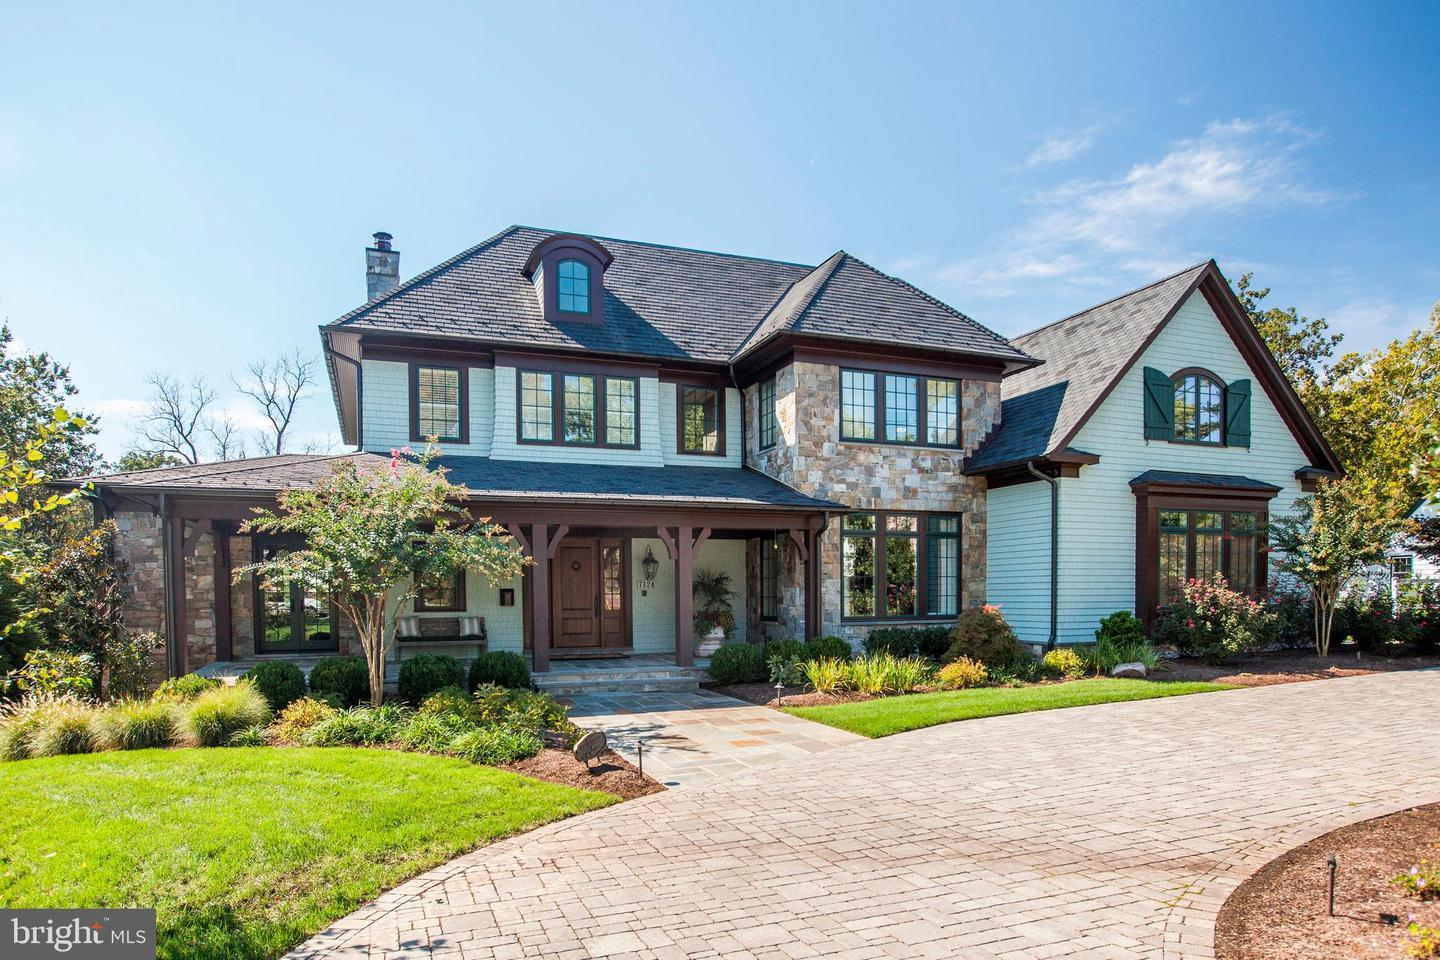 Top 5 Bethesda Home Sales: September 2019